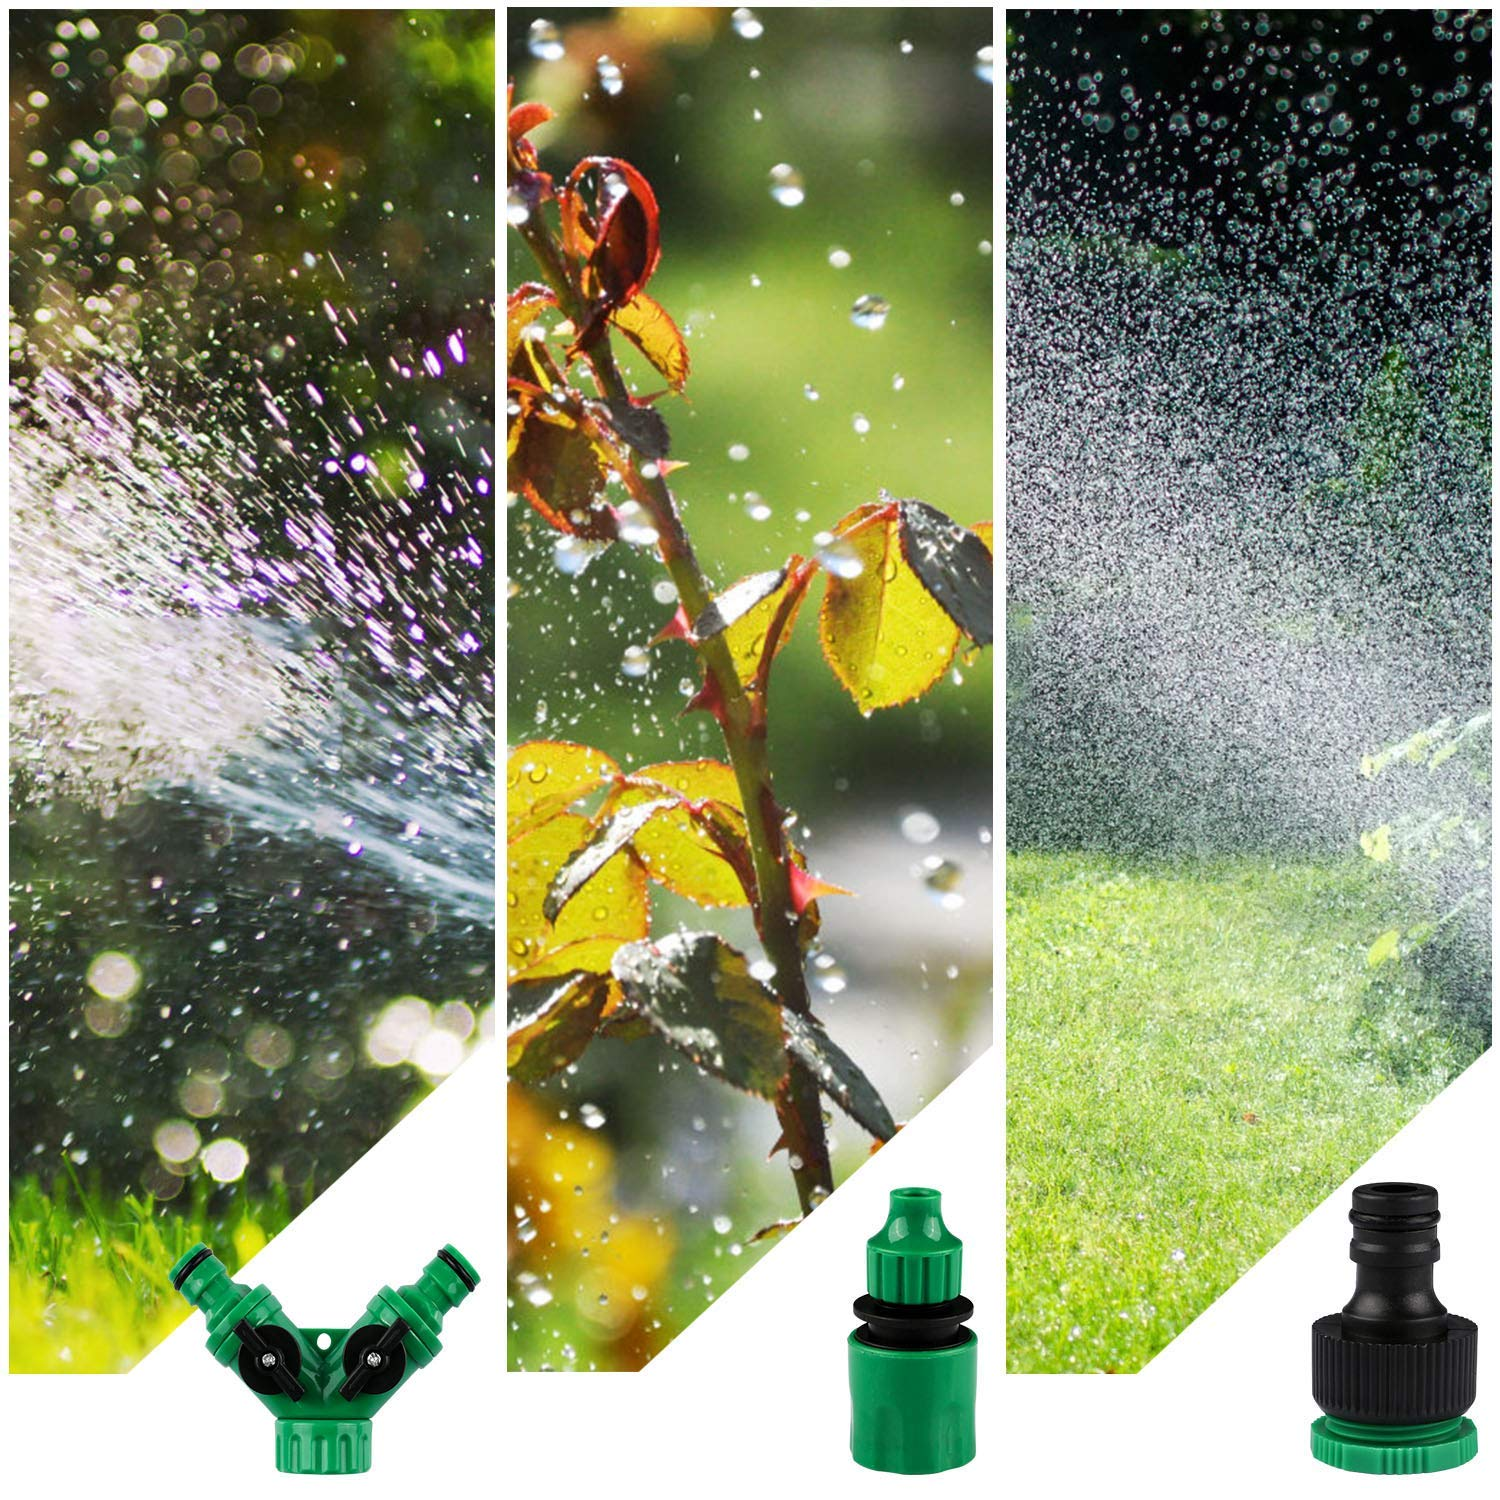 100ft /30M Irrigation System Kits For Outdoor Garden Greenhouse Automatic Watering Equipment